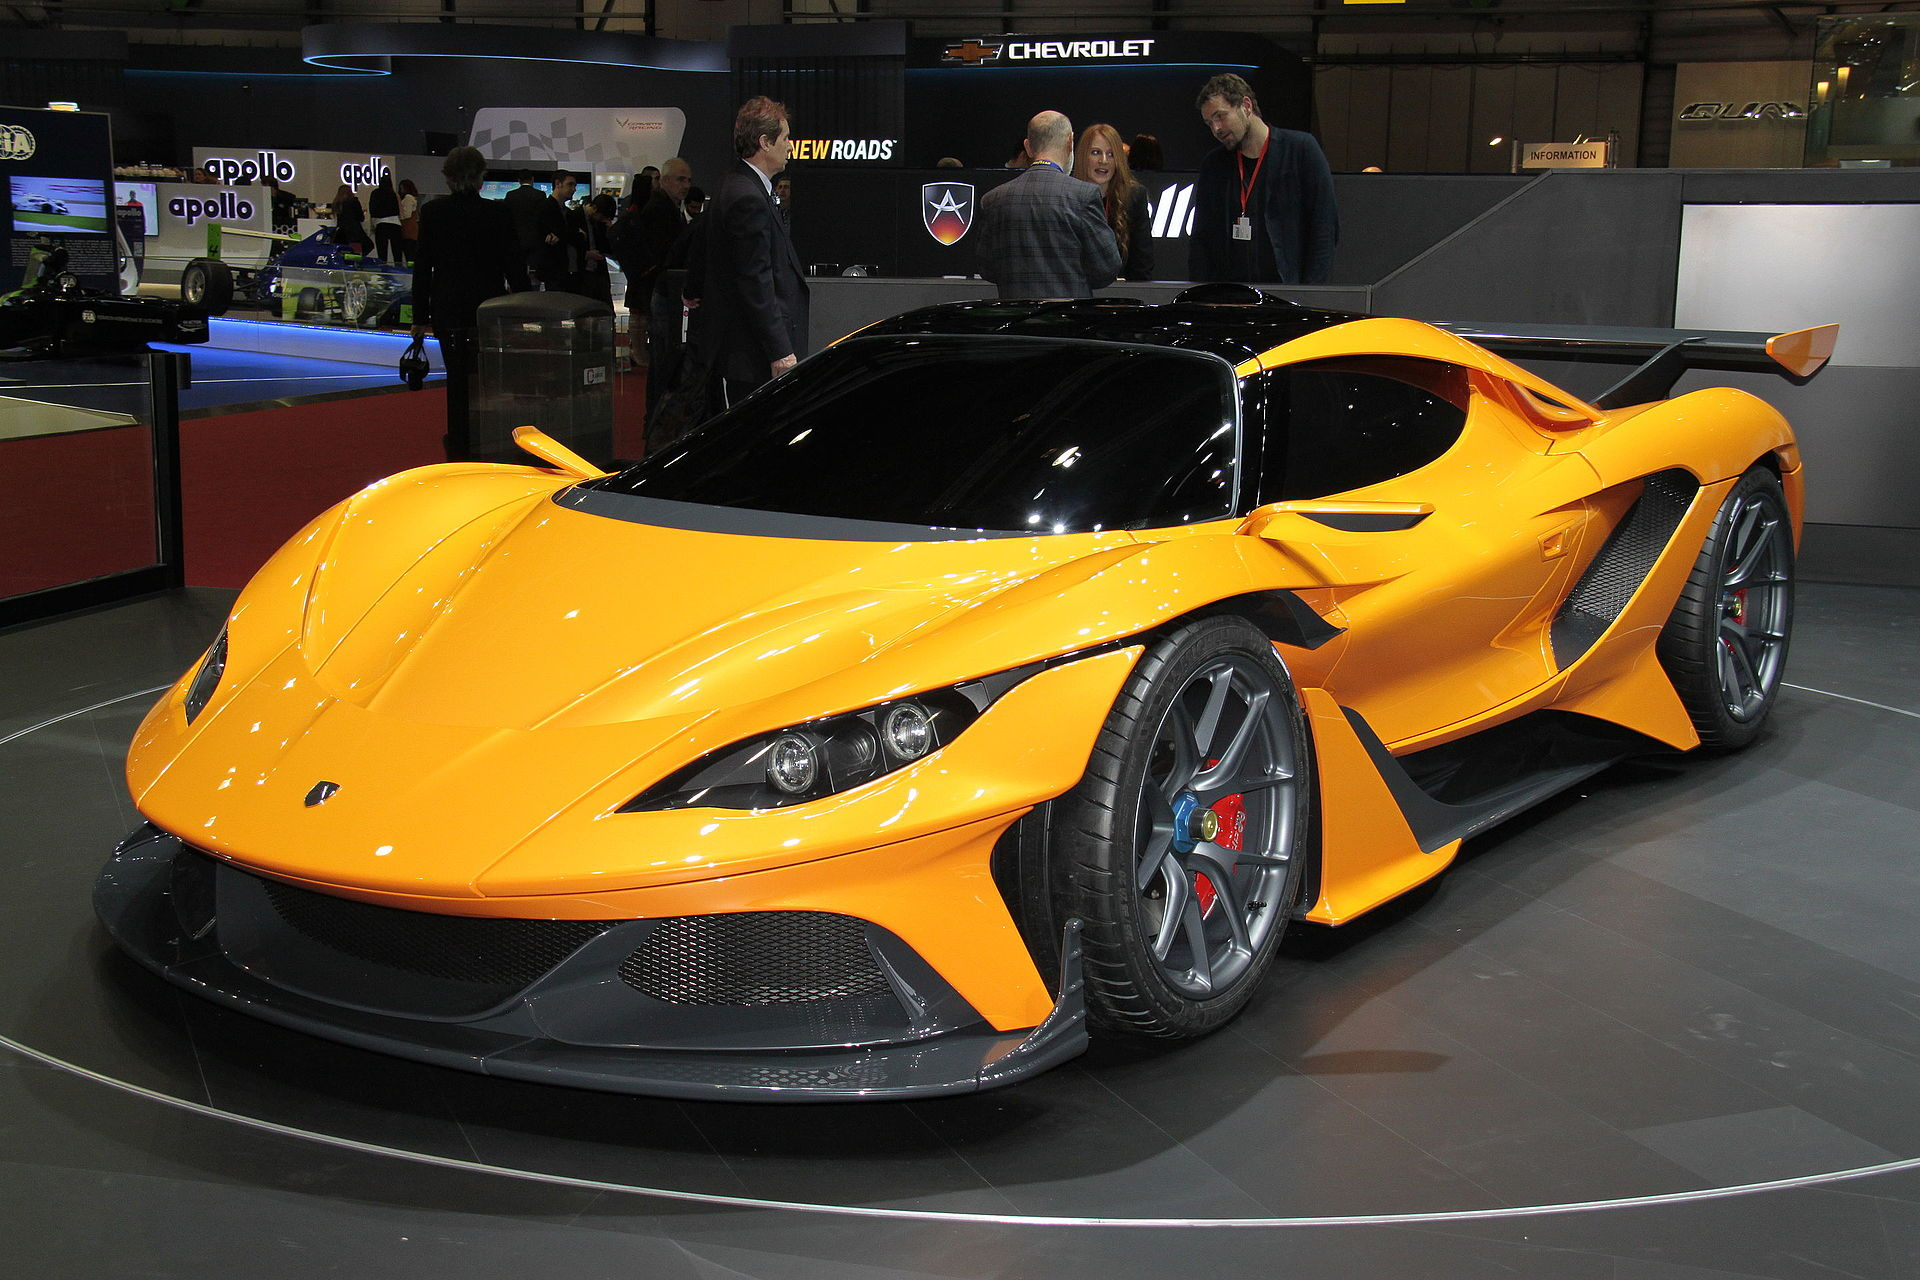 Apollo Arrow Wikipedia